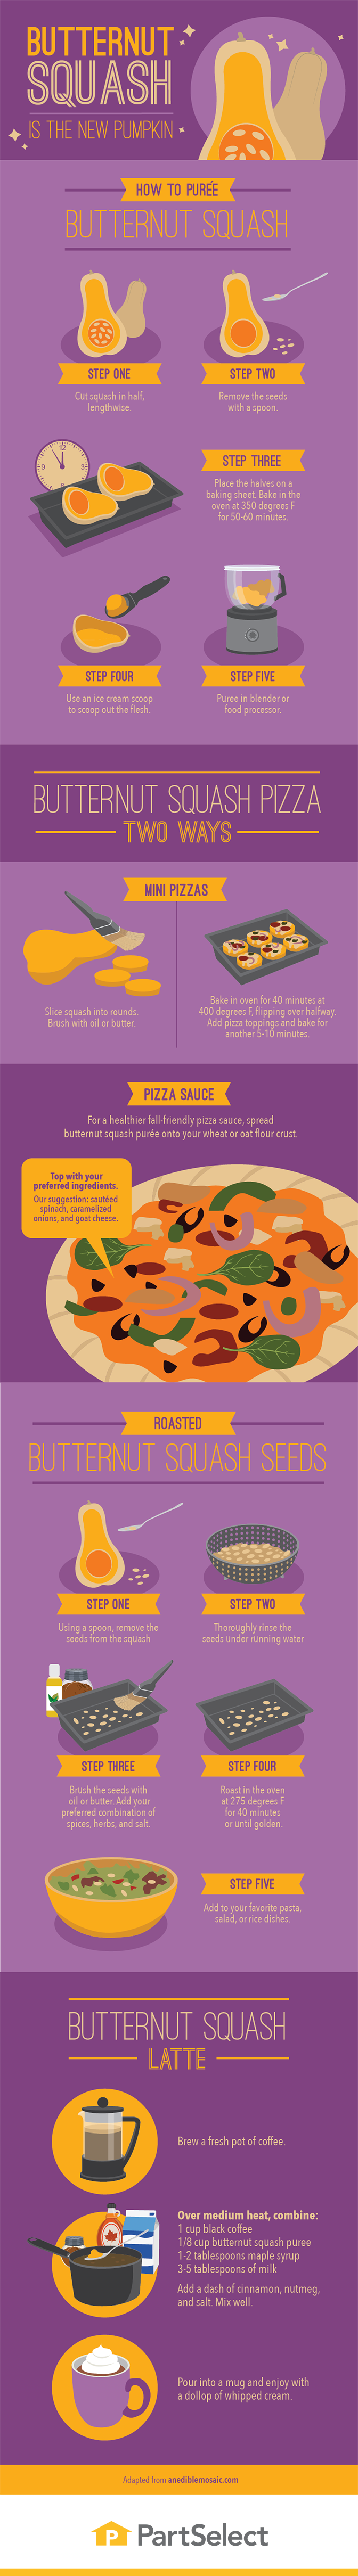 Butternut Squash Is the New Pumpkin #Infographic